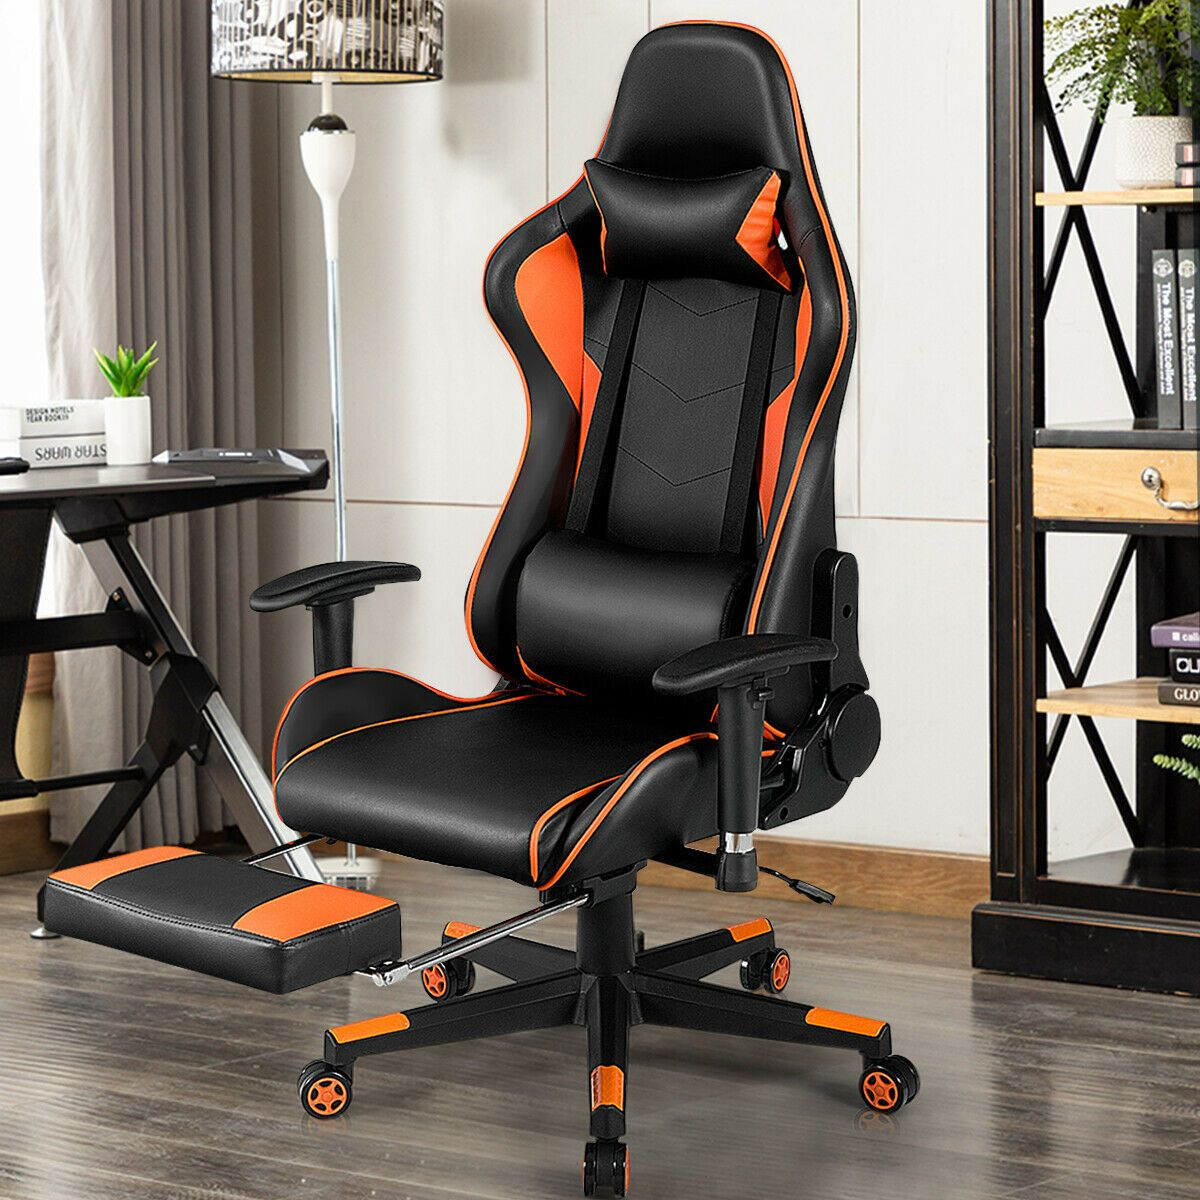 Reclining Racing Chair With Lumbar Support Footrest In 2020 Racing Chair Gaming Chair Chair